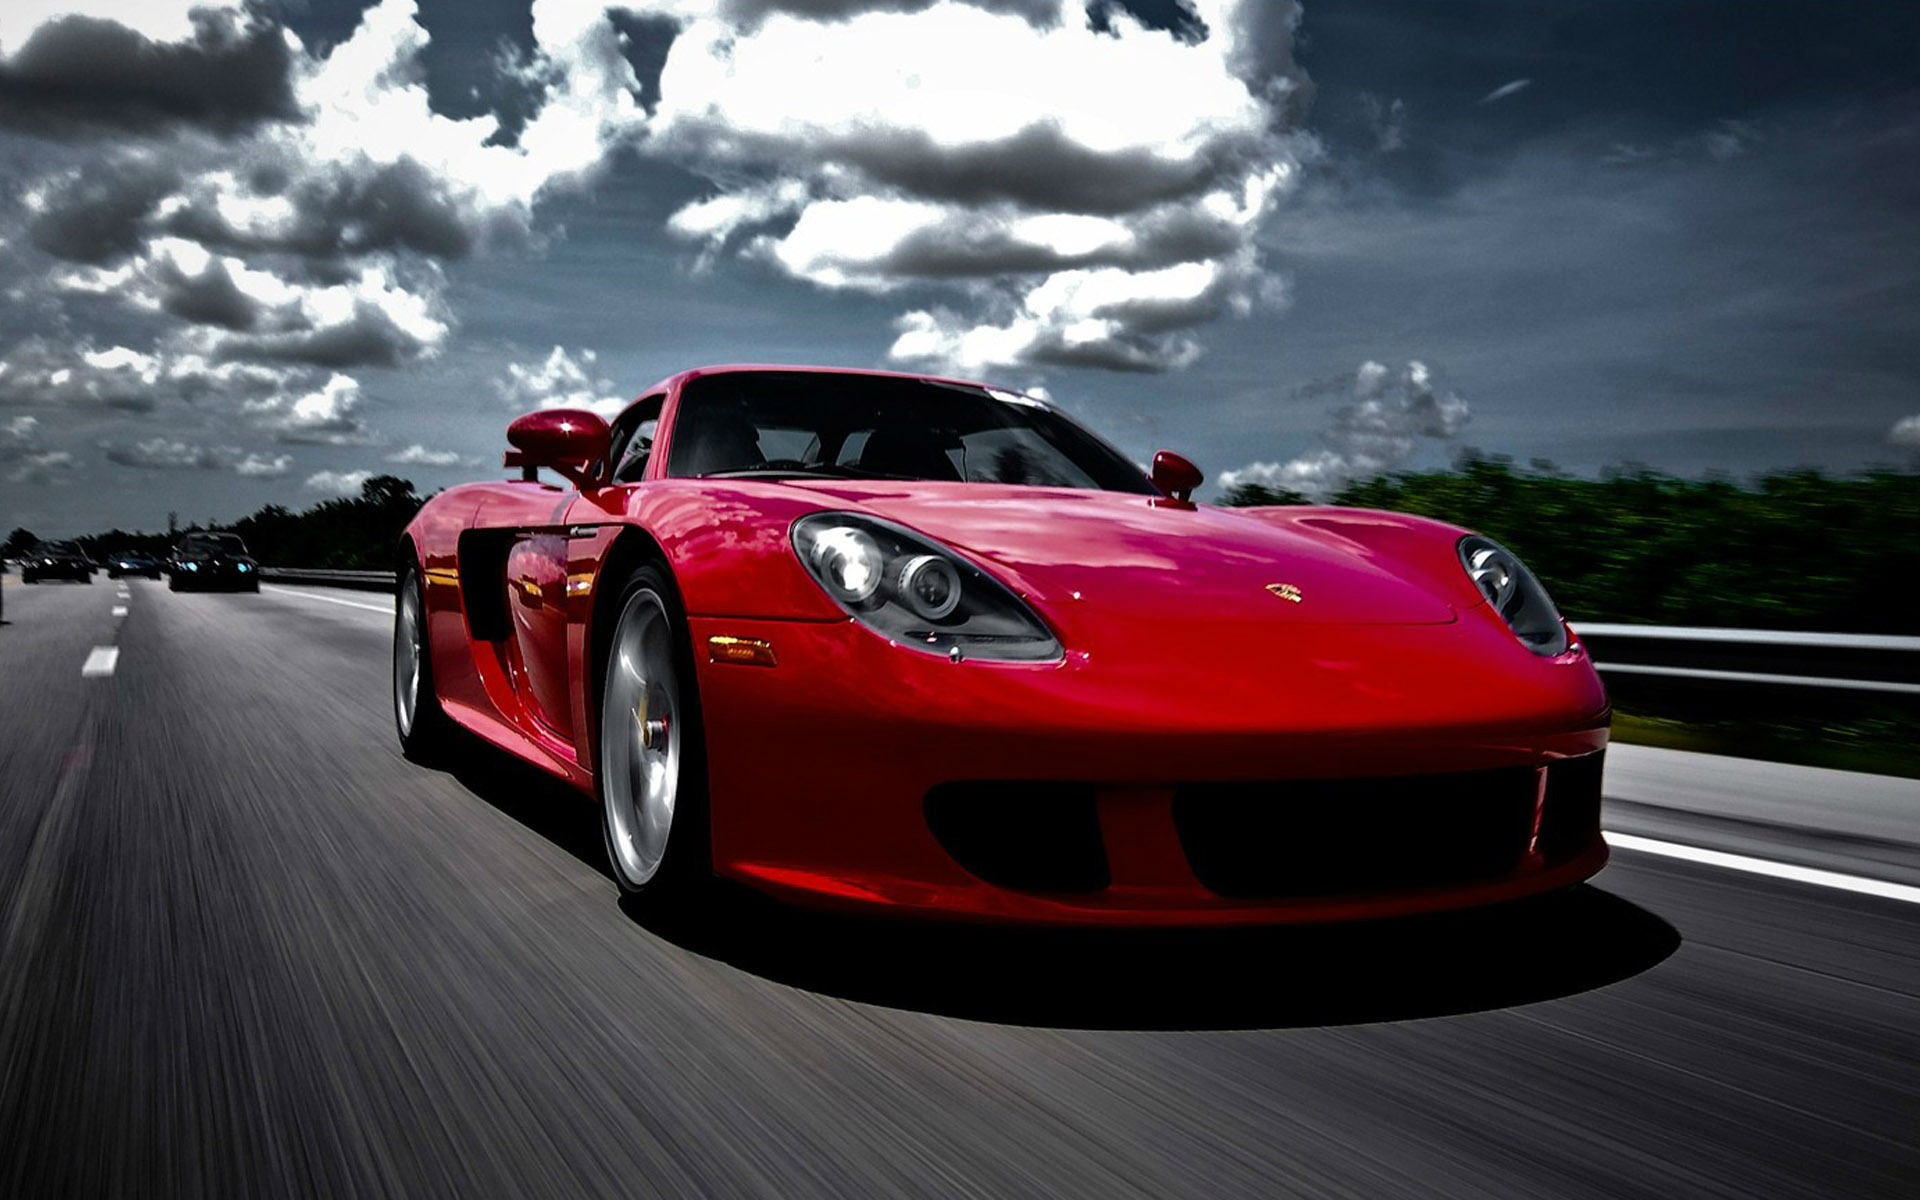 porsche carrera gt images porsche carrera gt hd wallpaper and background photos 40220103. Black Bedroom Furniture Sets. Home Design Ideas